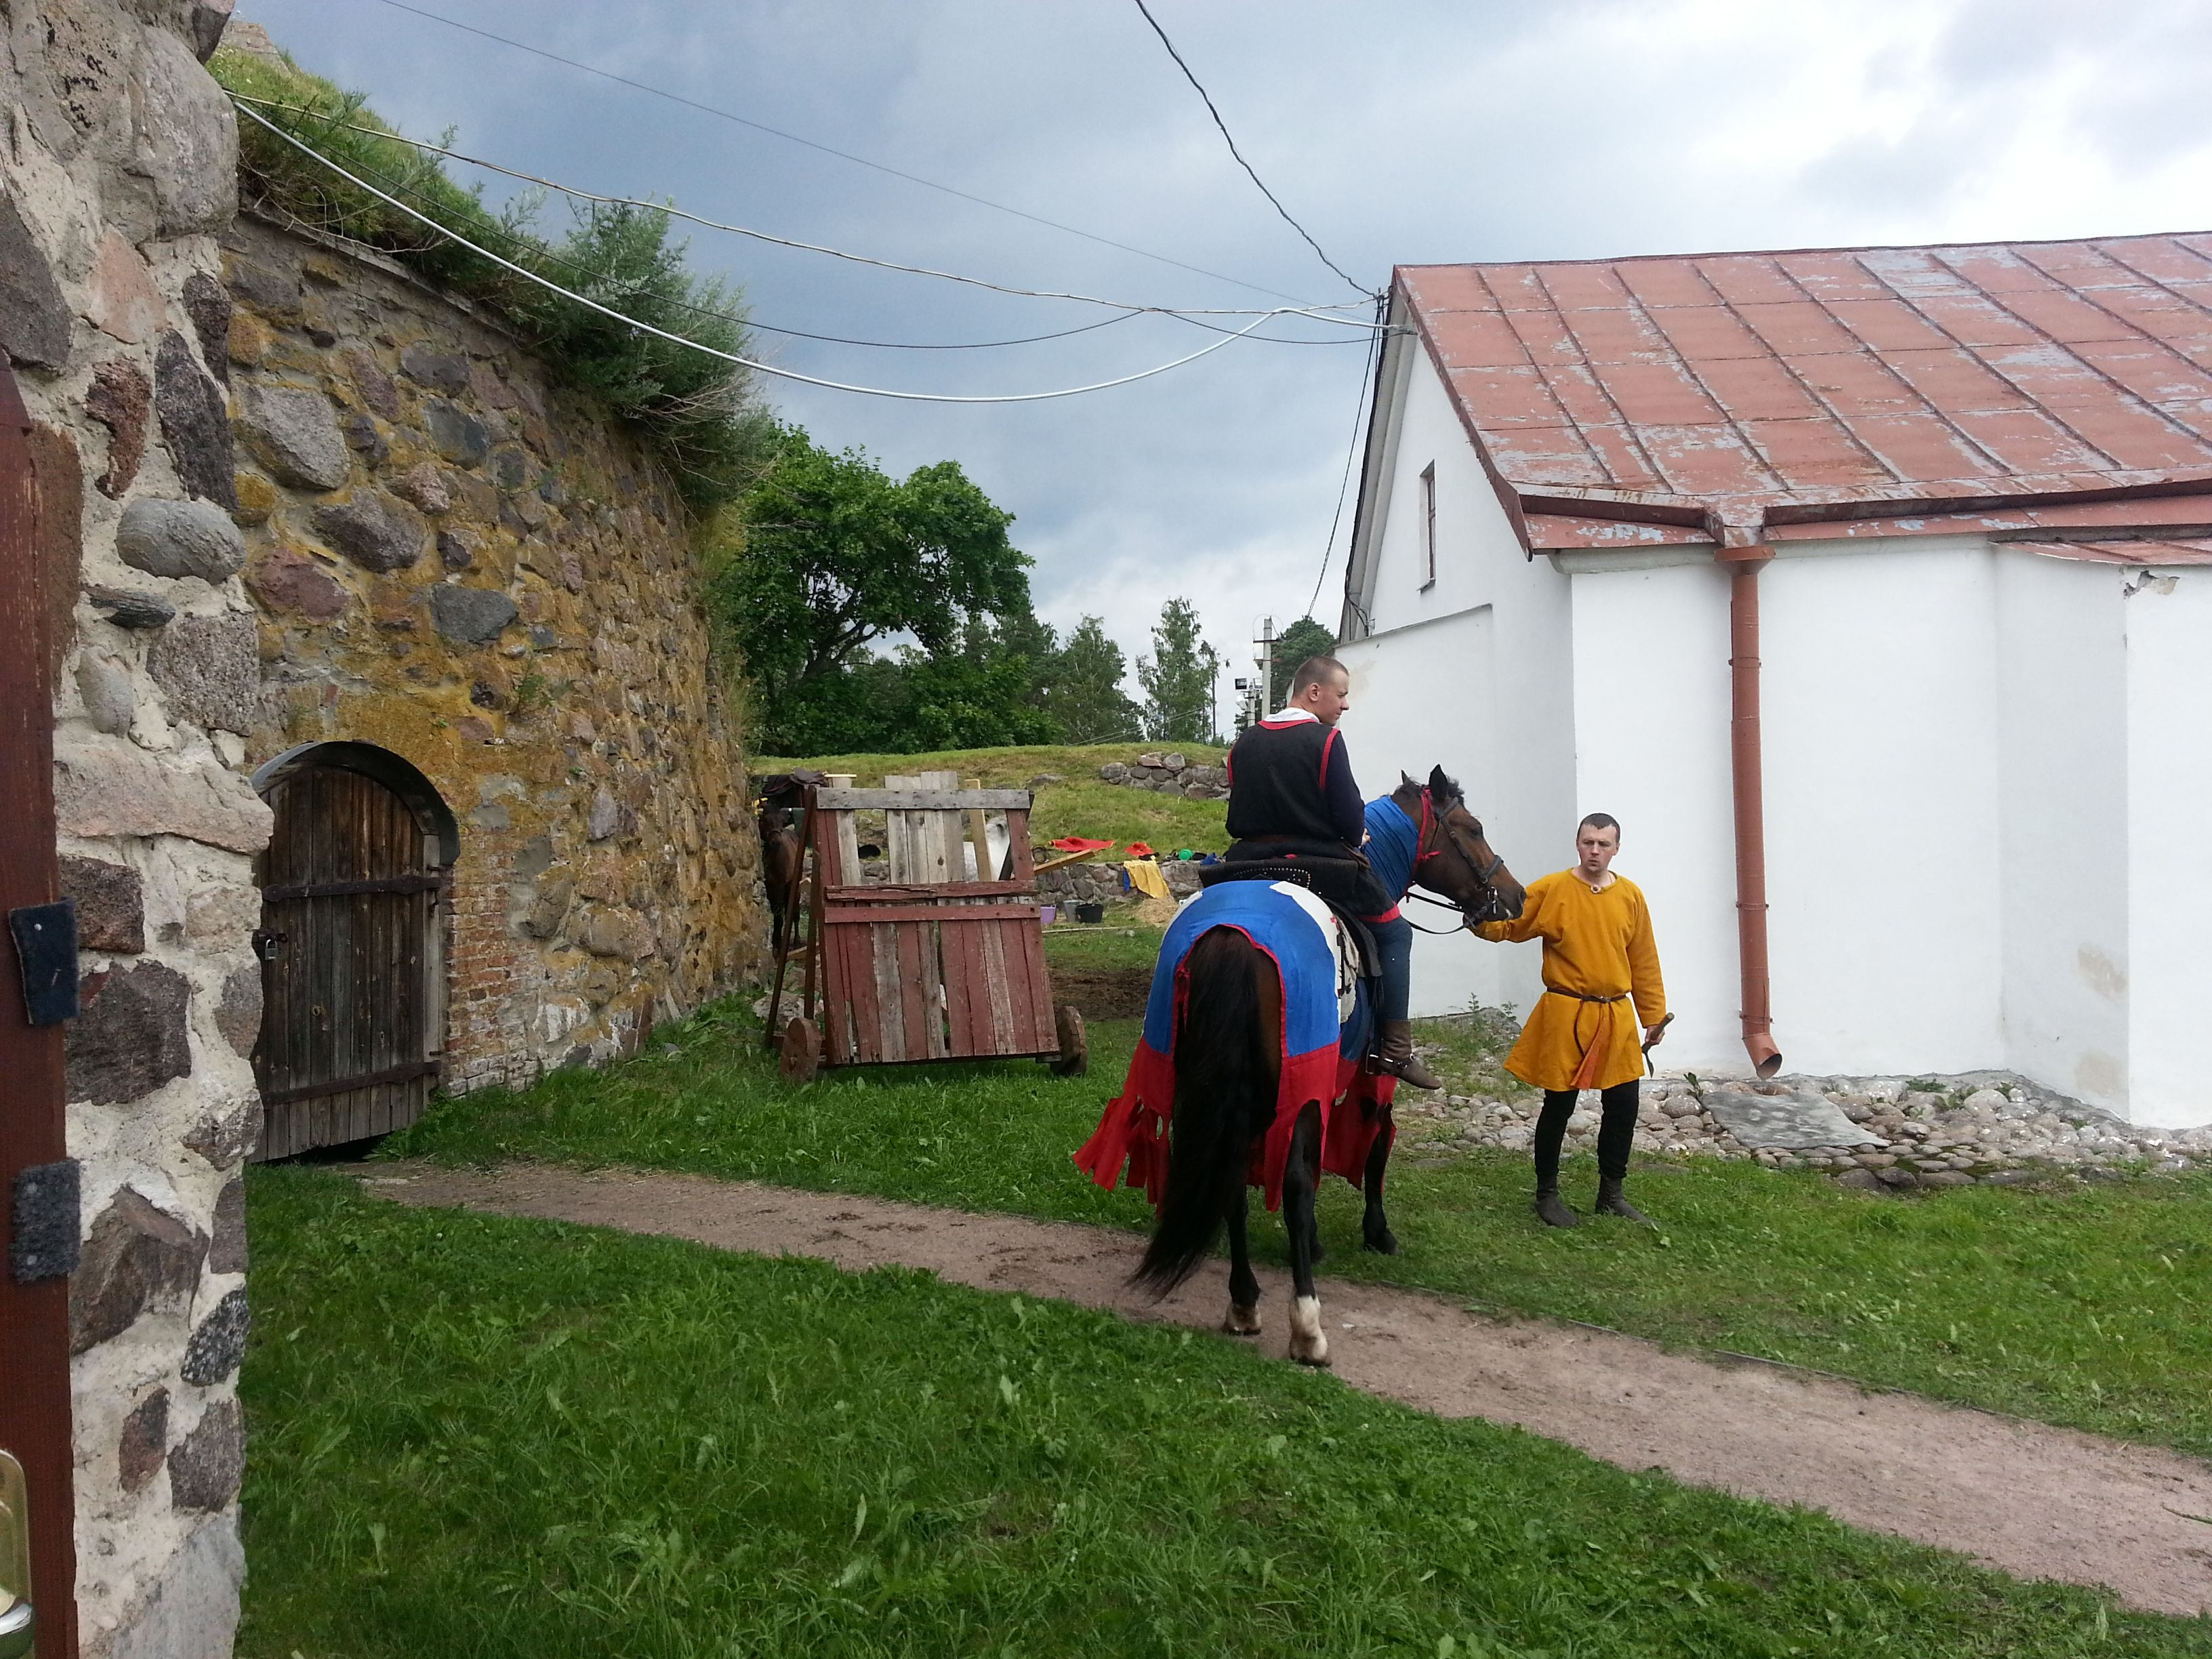 Middle Ages festival. Priozersk. Russia.